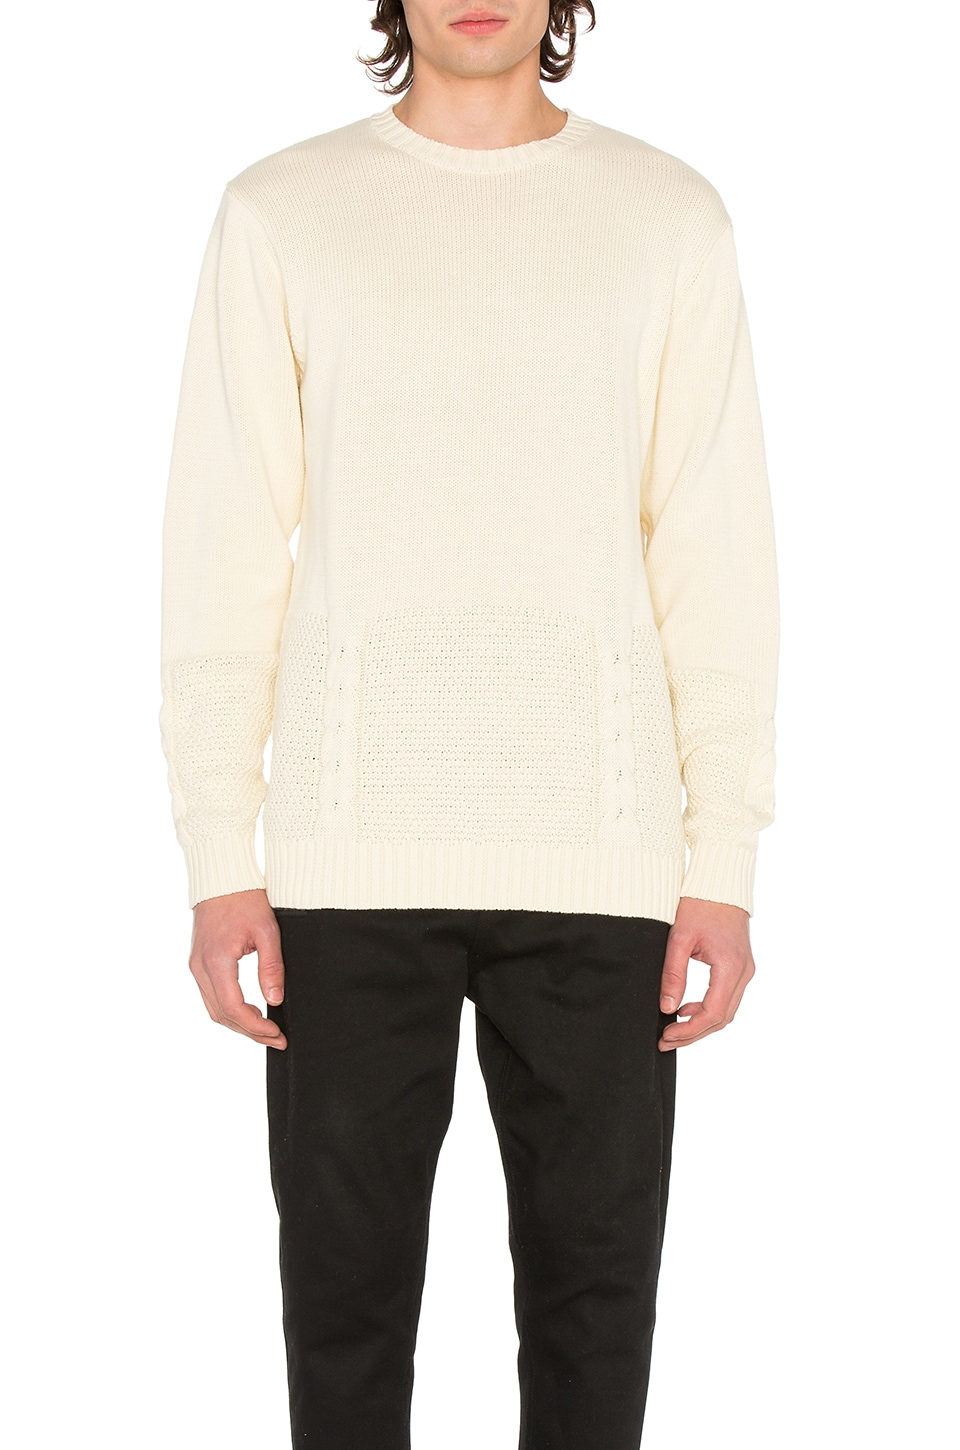 Ezra Sweater by Publish